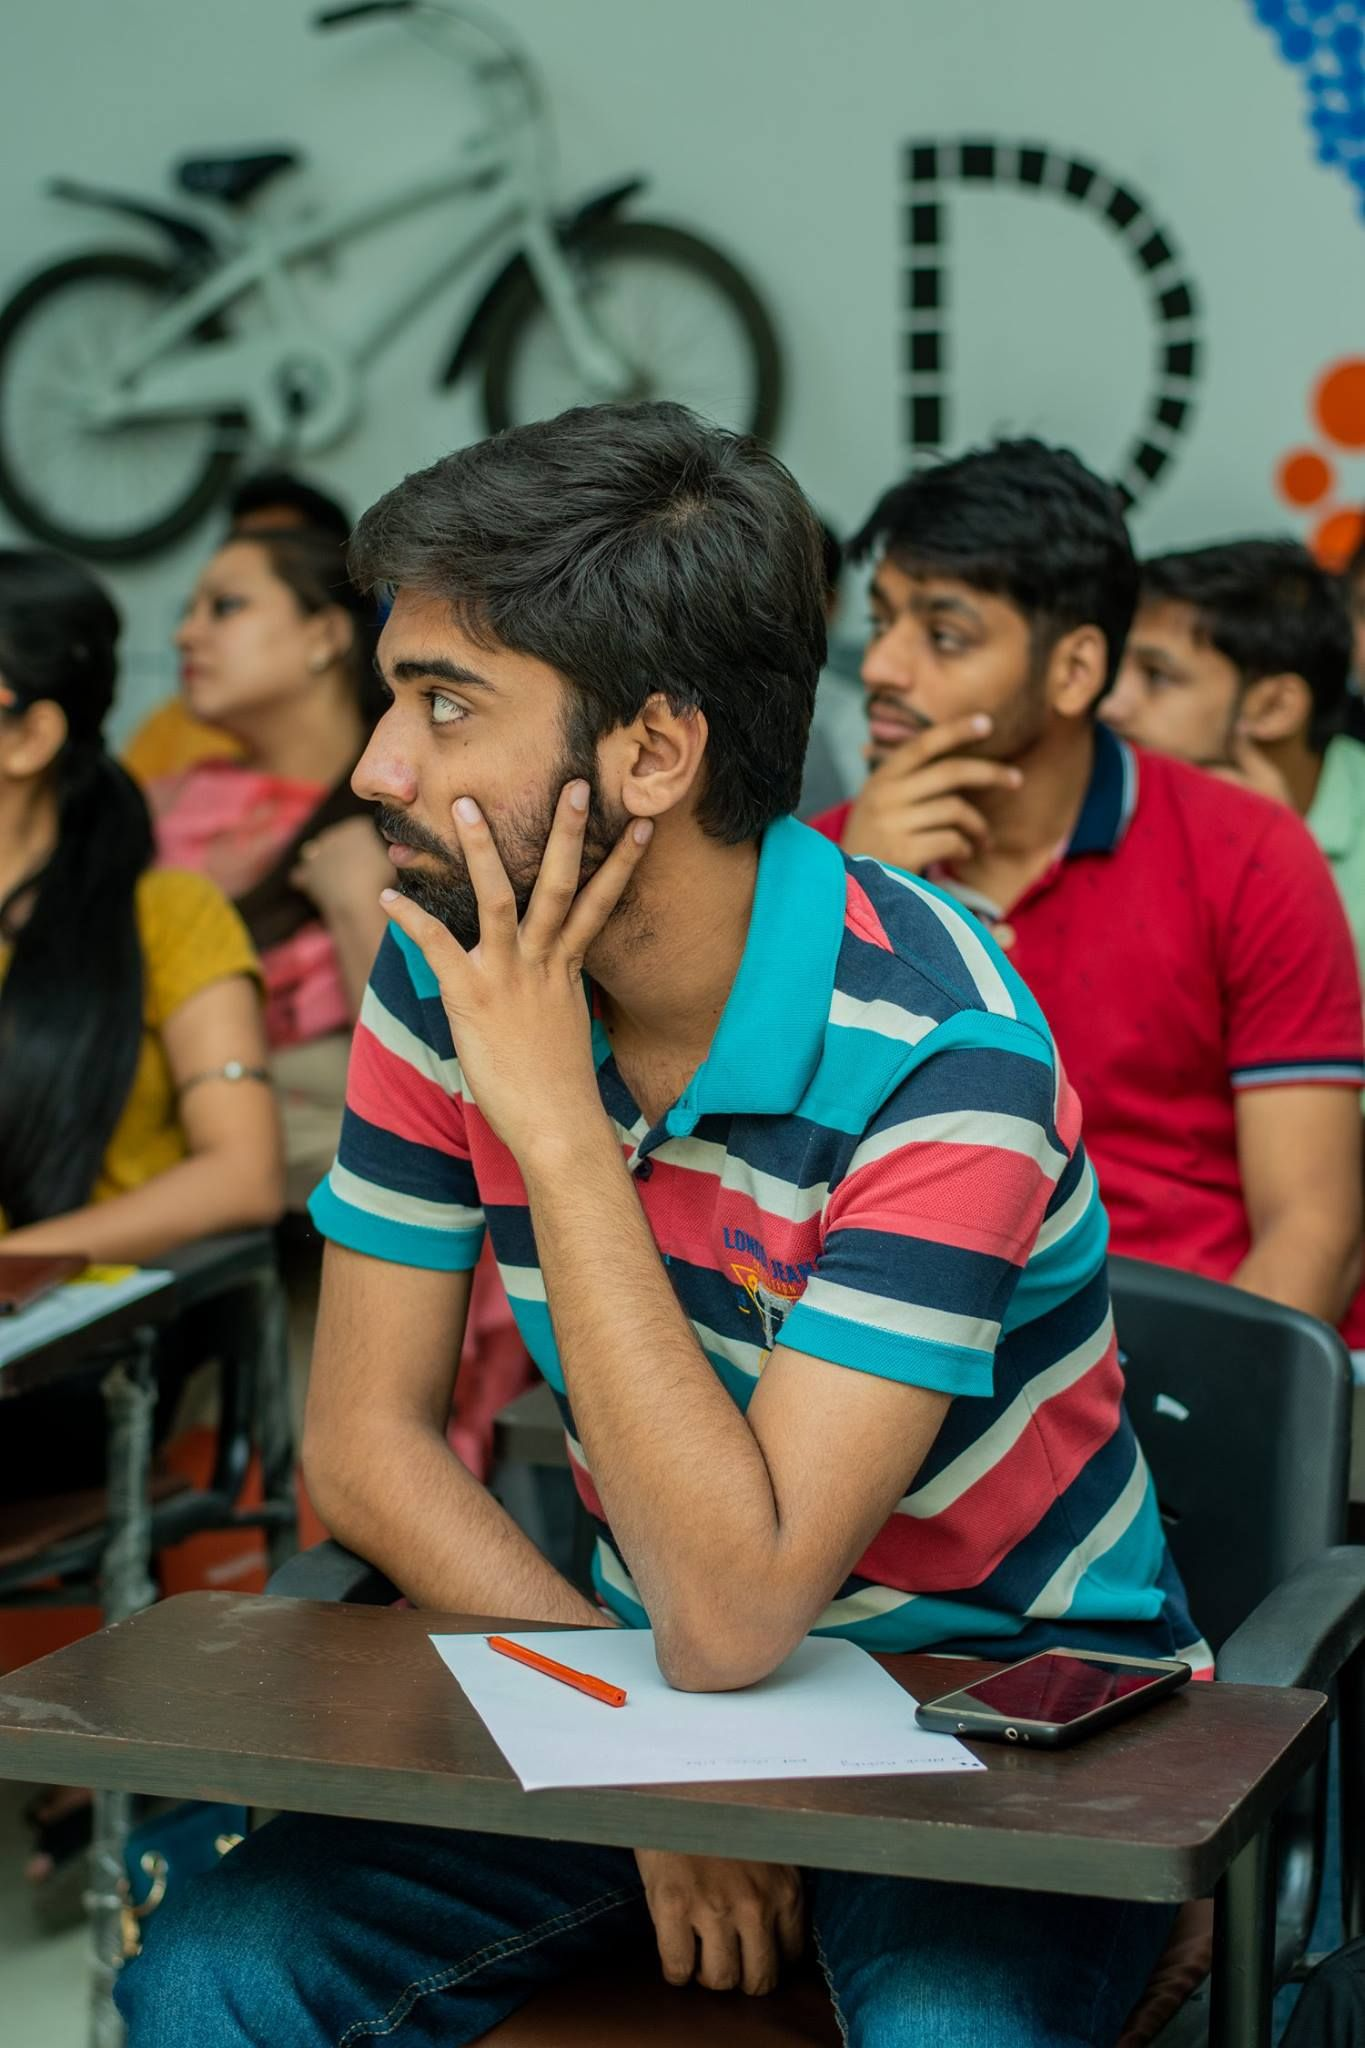 Marketing is no longer about making cold calls, spreading flyers and shaking hands while exchanging business cards. Digital Marketing Course in Delhi | Marketing courses ...